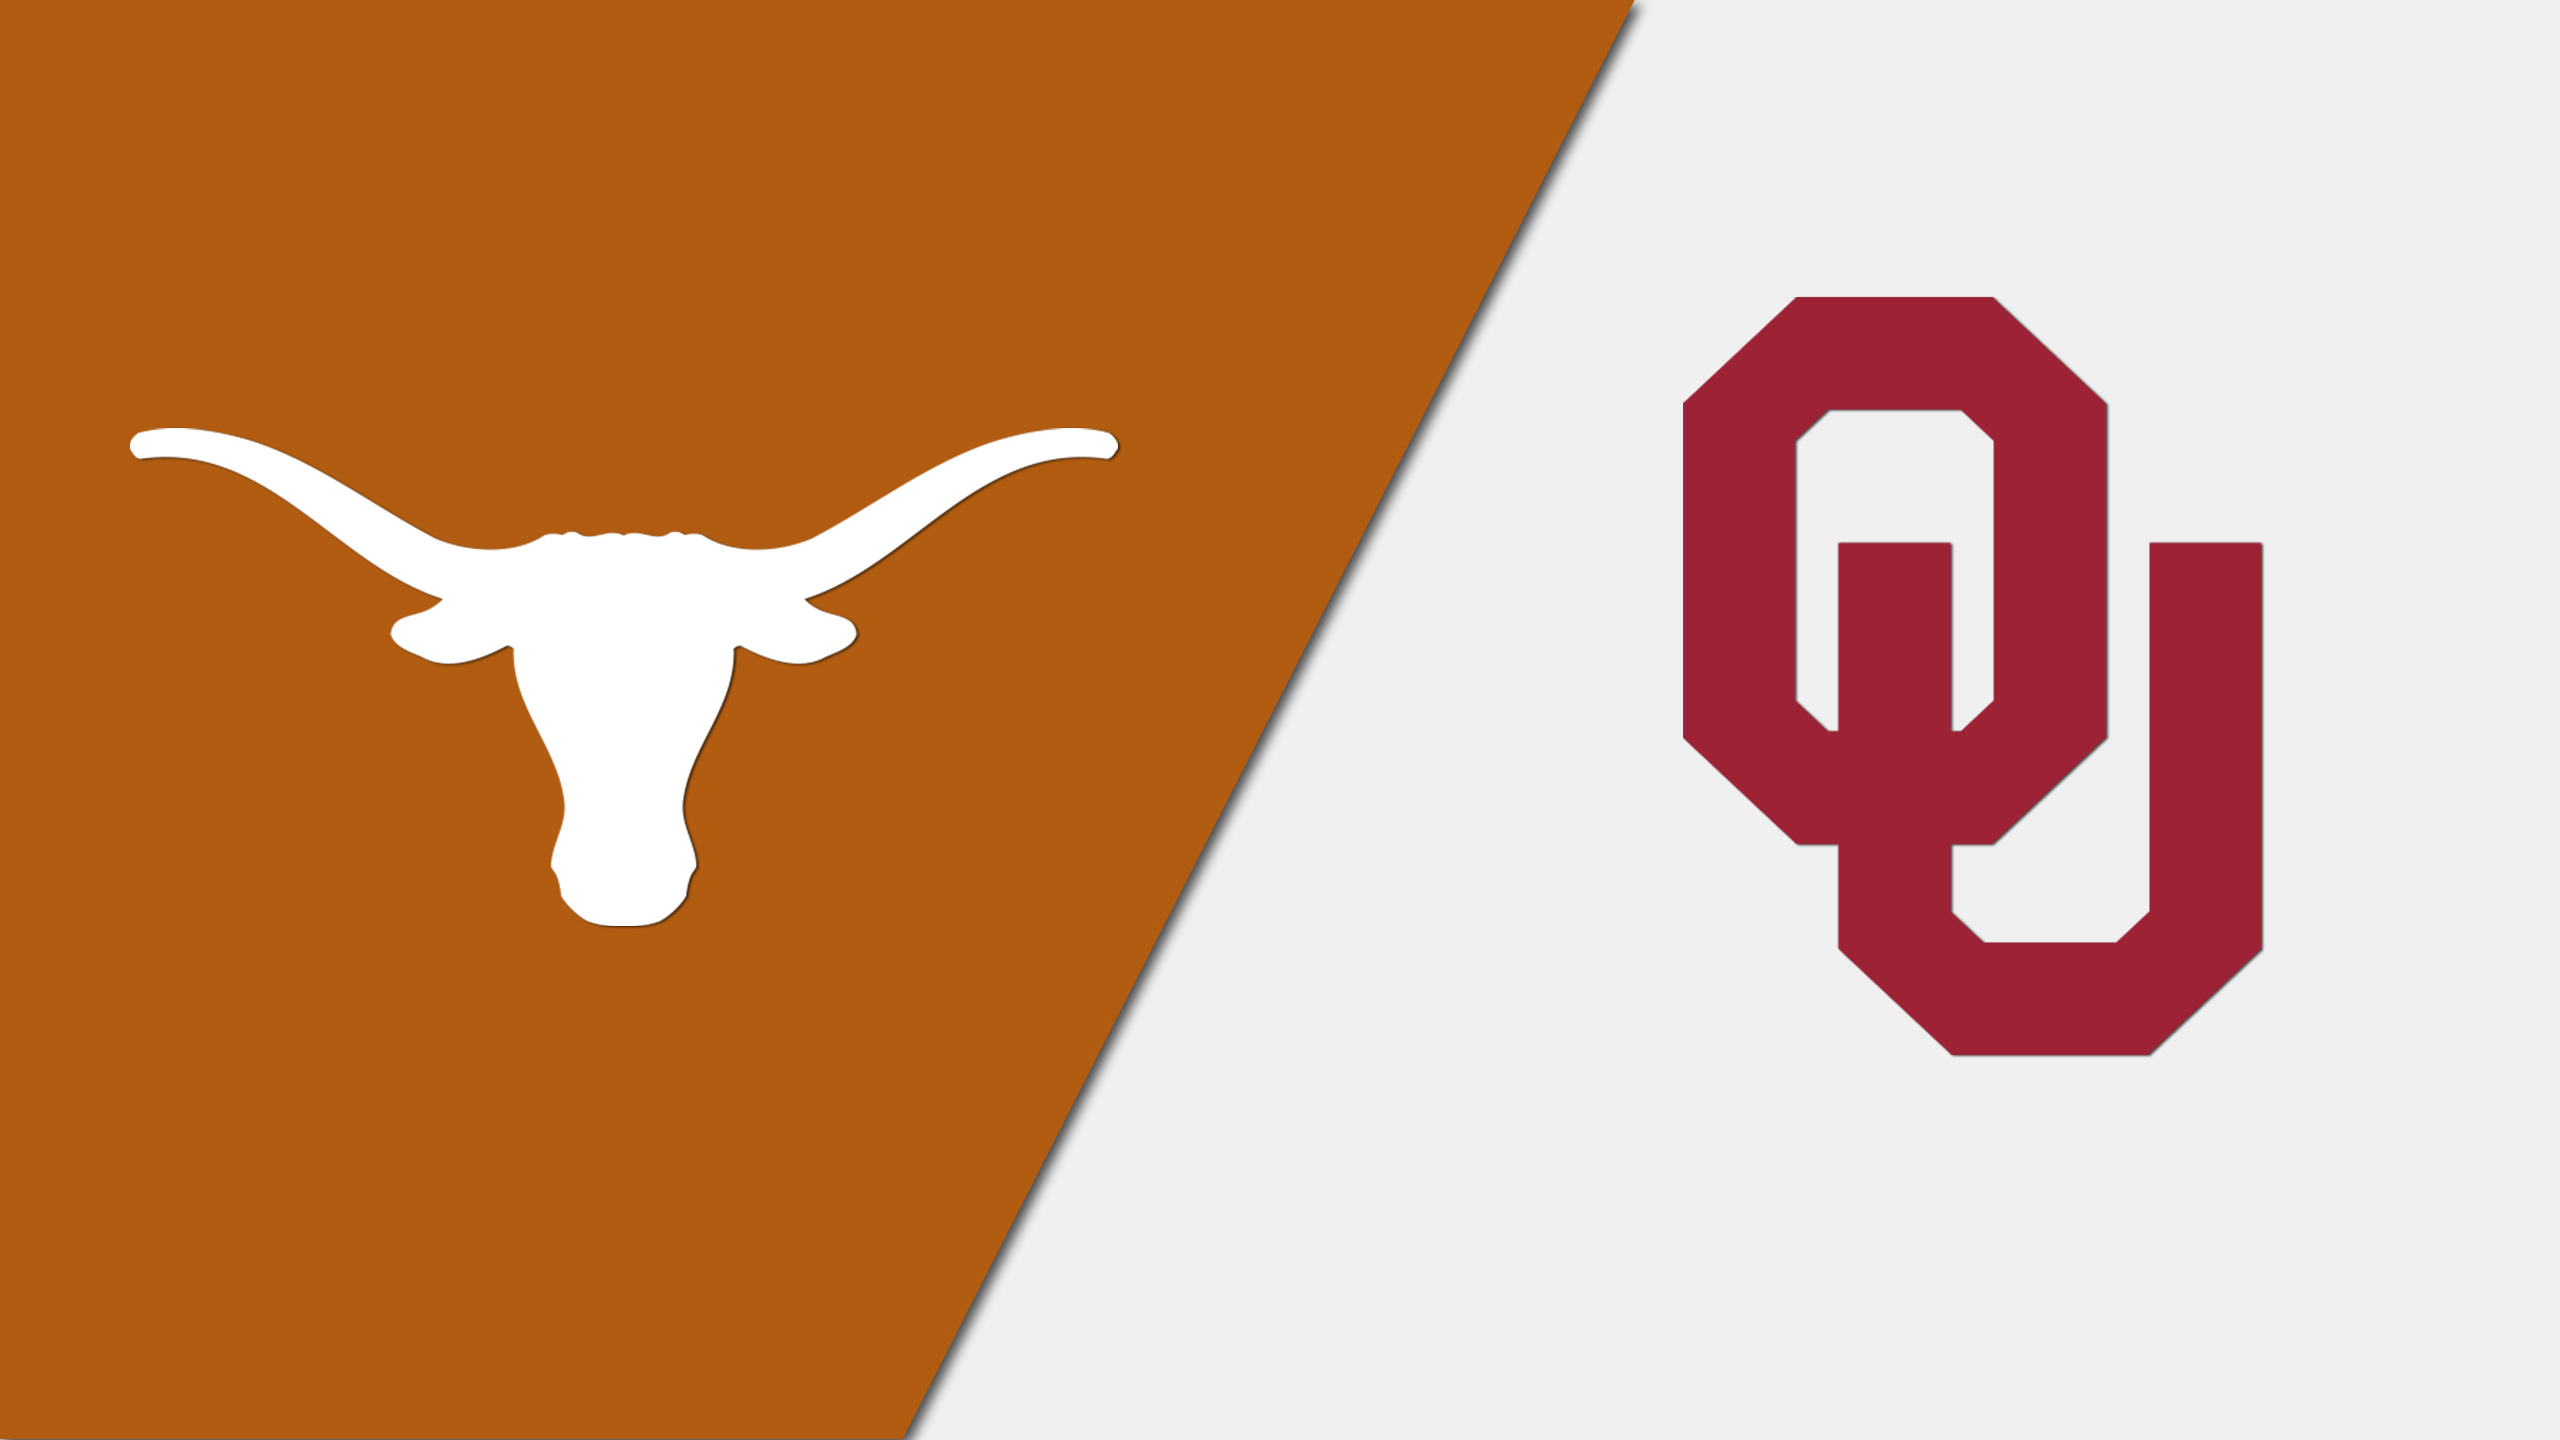 Texas Longhorns vs. Oklahoma Sooners (re-air)